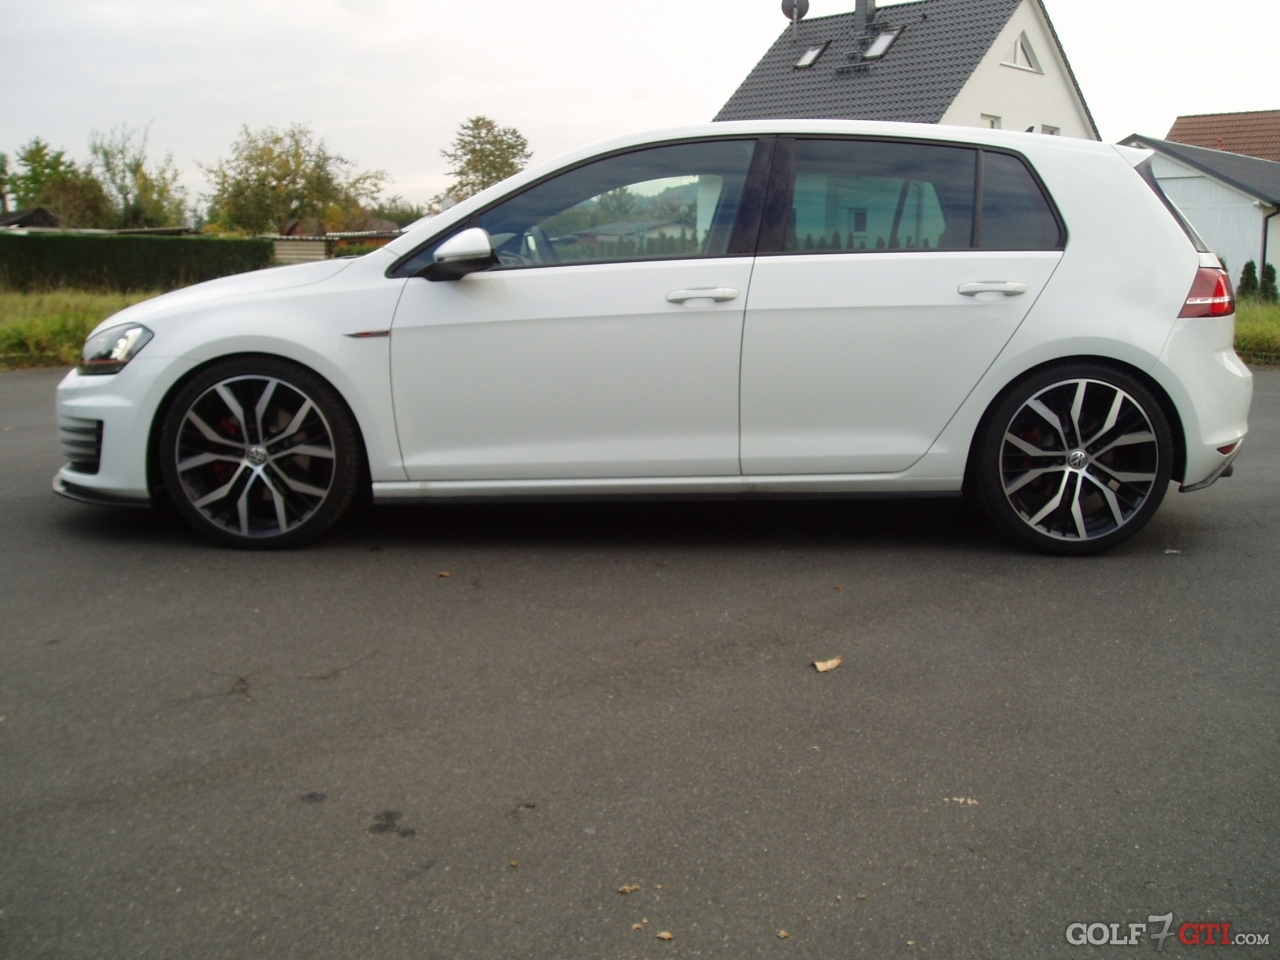 st suspensions golf 7 gti community forum. Black Bedroom Furniture Sets. Home Design Ideas